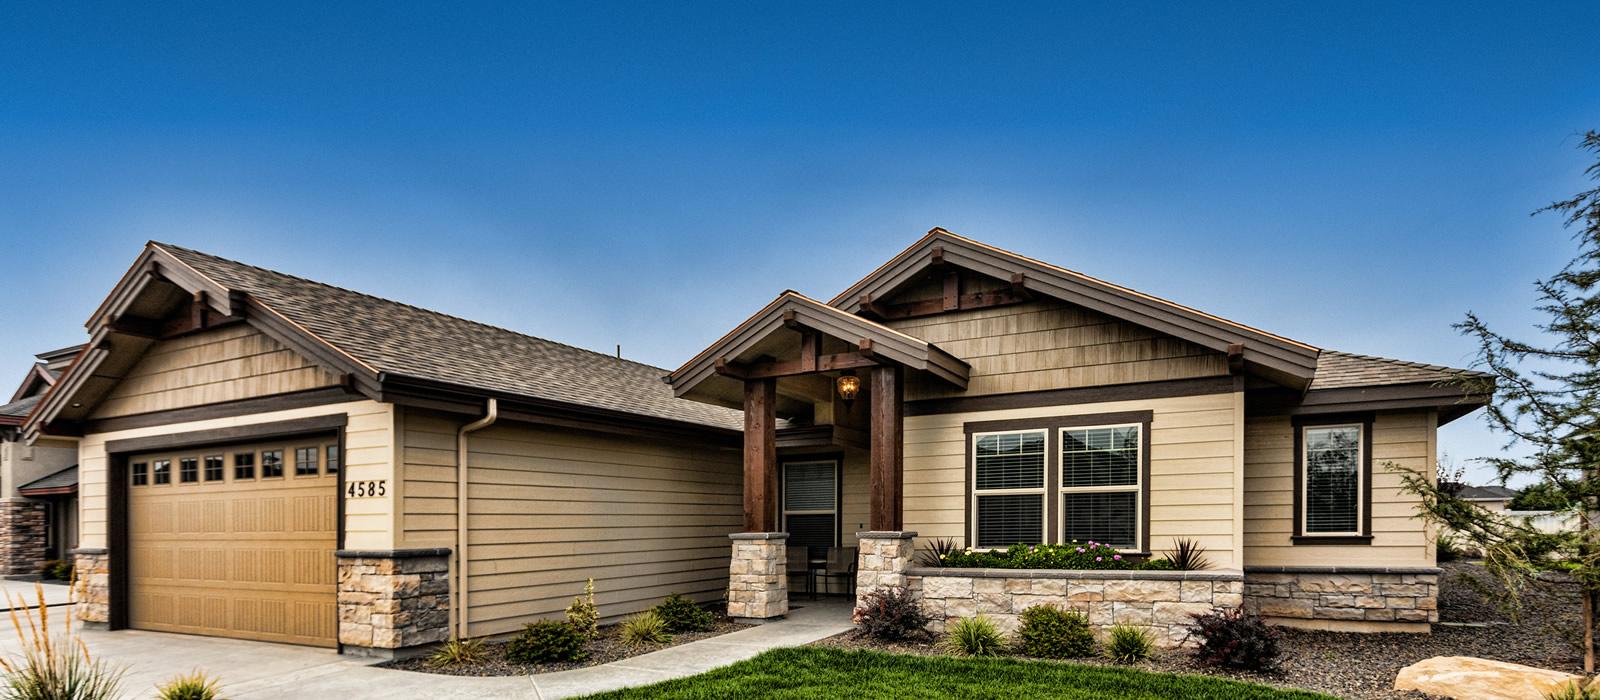 Boise idaho homes for sale build idaho real estate for Building a house in idaho